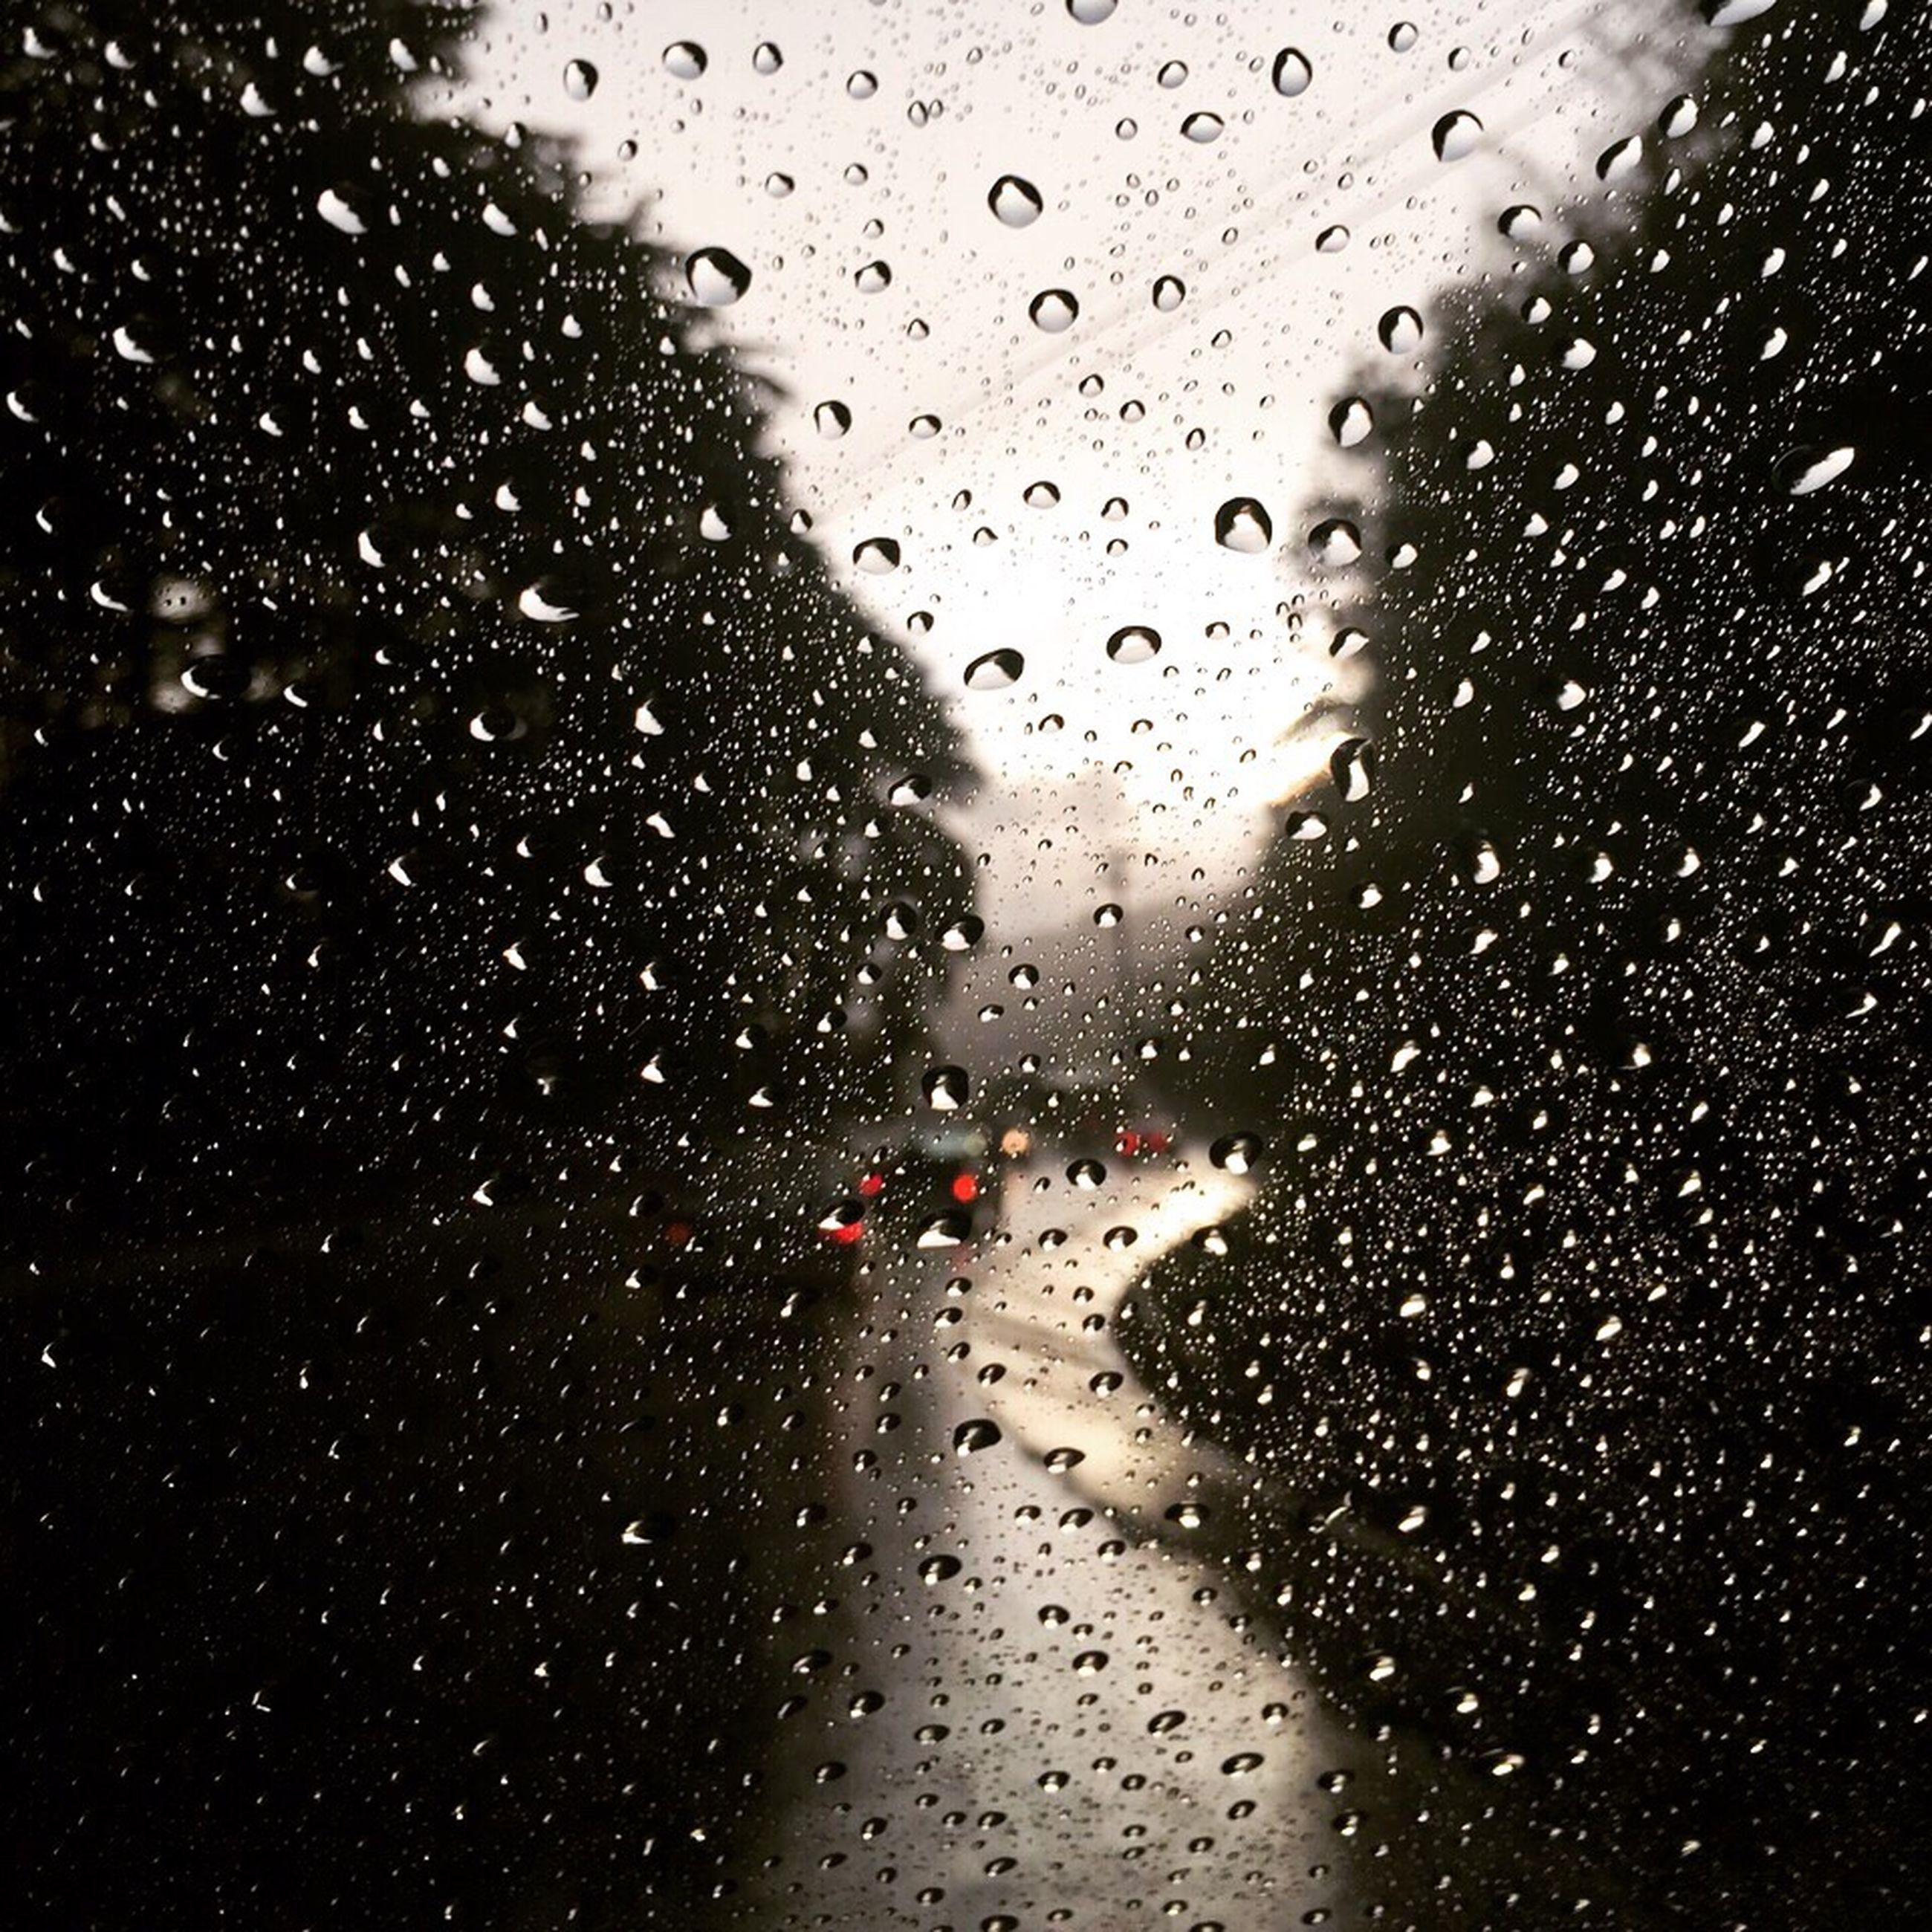 wet, rain, water, drop, season, window, weather, indoors, raindrop, glass - material, transparent, mode of transport, rainy, sky, focus on foreground, nature, full frame, no people, city life